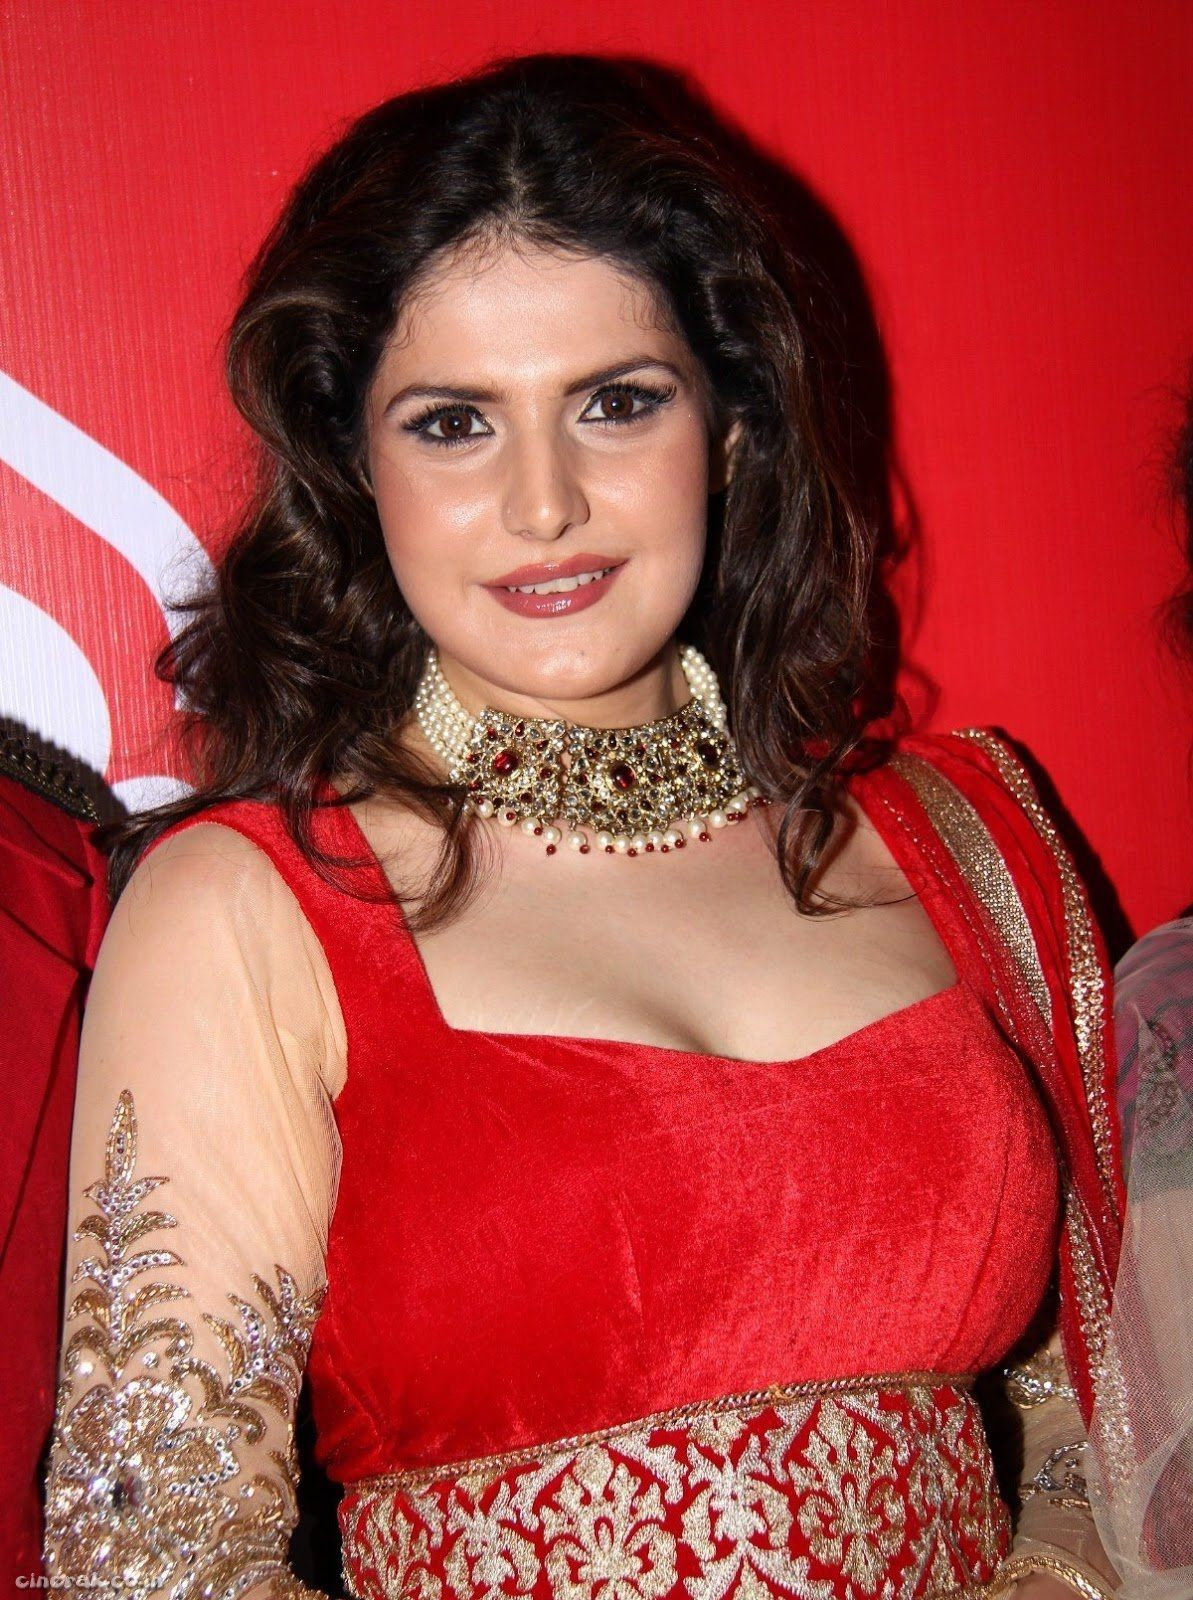 Zarine khan weight loss when youre a bollywood celebrity you are zarine khan weight loss when youre a bollywood celebrity you are bound to be under the spotlight 24x7 being an actress is not just about acting skills ccuart Image collections